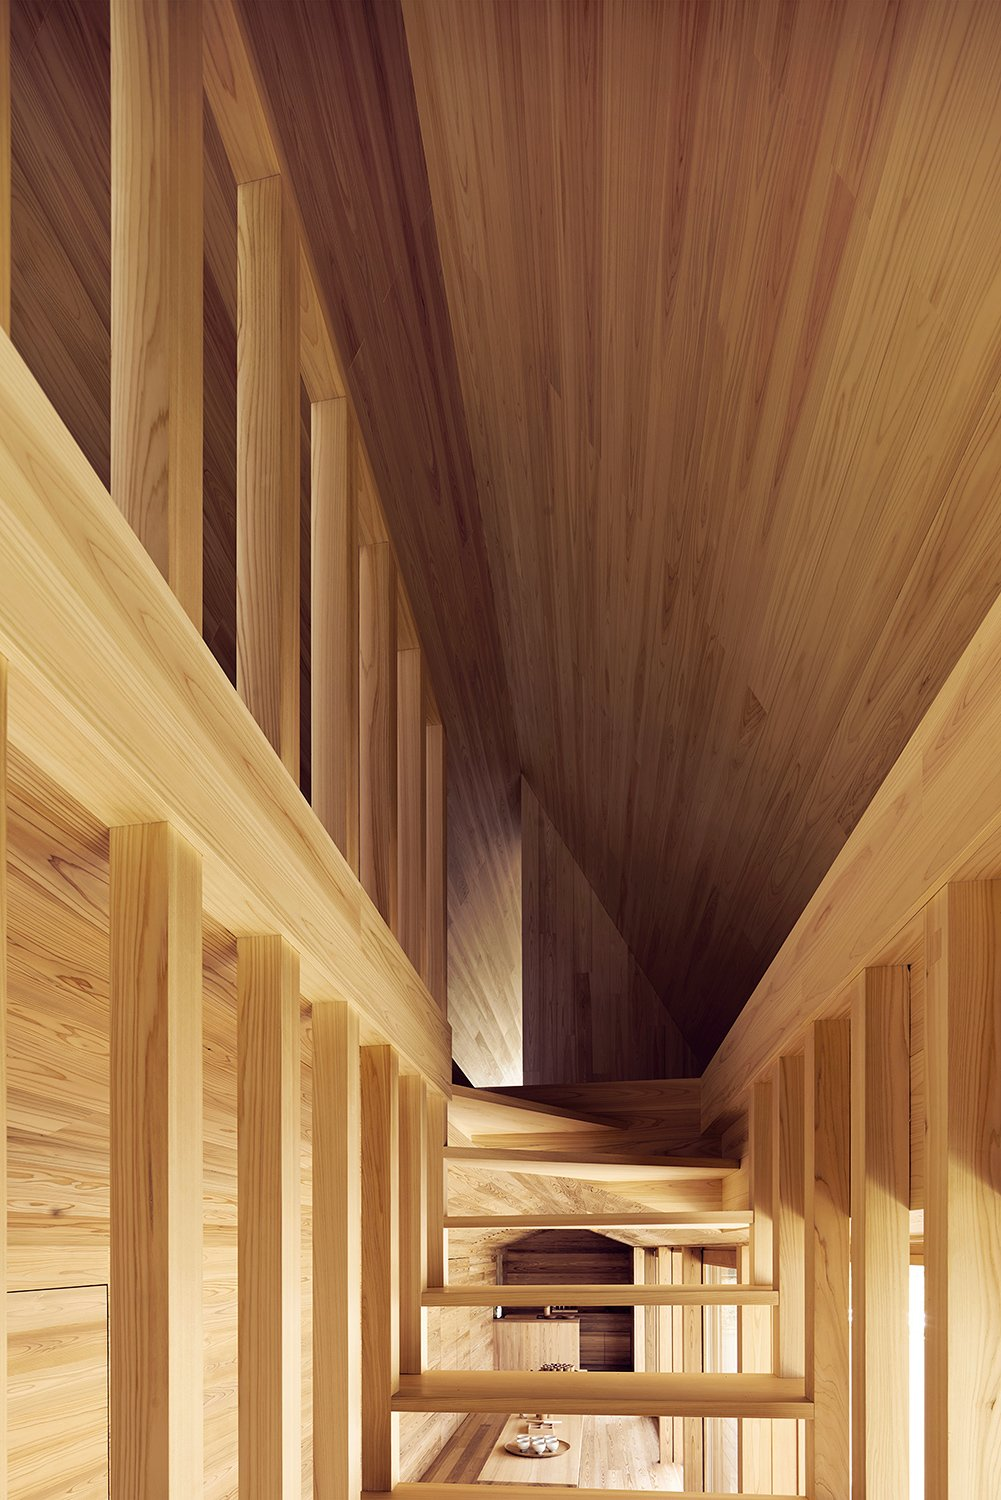 The open staircase is seen from a front angle, showcasing the dynamic lines that converge at the top of the stairway leading to the bedroom space.  Photo 9 of 12 in The Community-Run Cedar House by Airbnb and Go Hasegawa Welcomes Guests in Rural Japan from Yoshino Cedar House